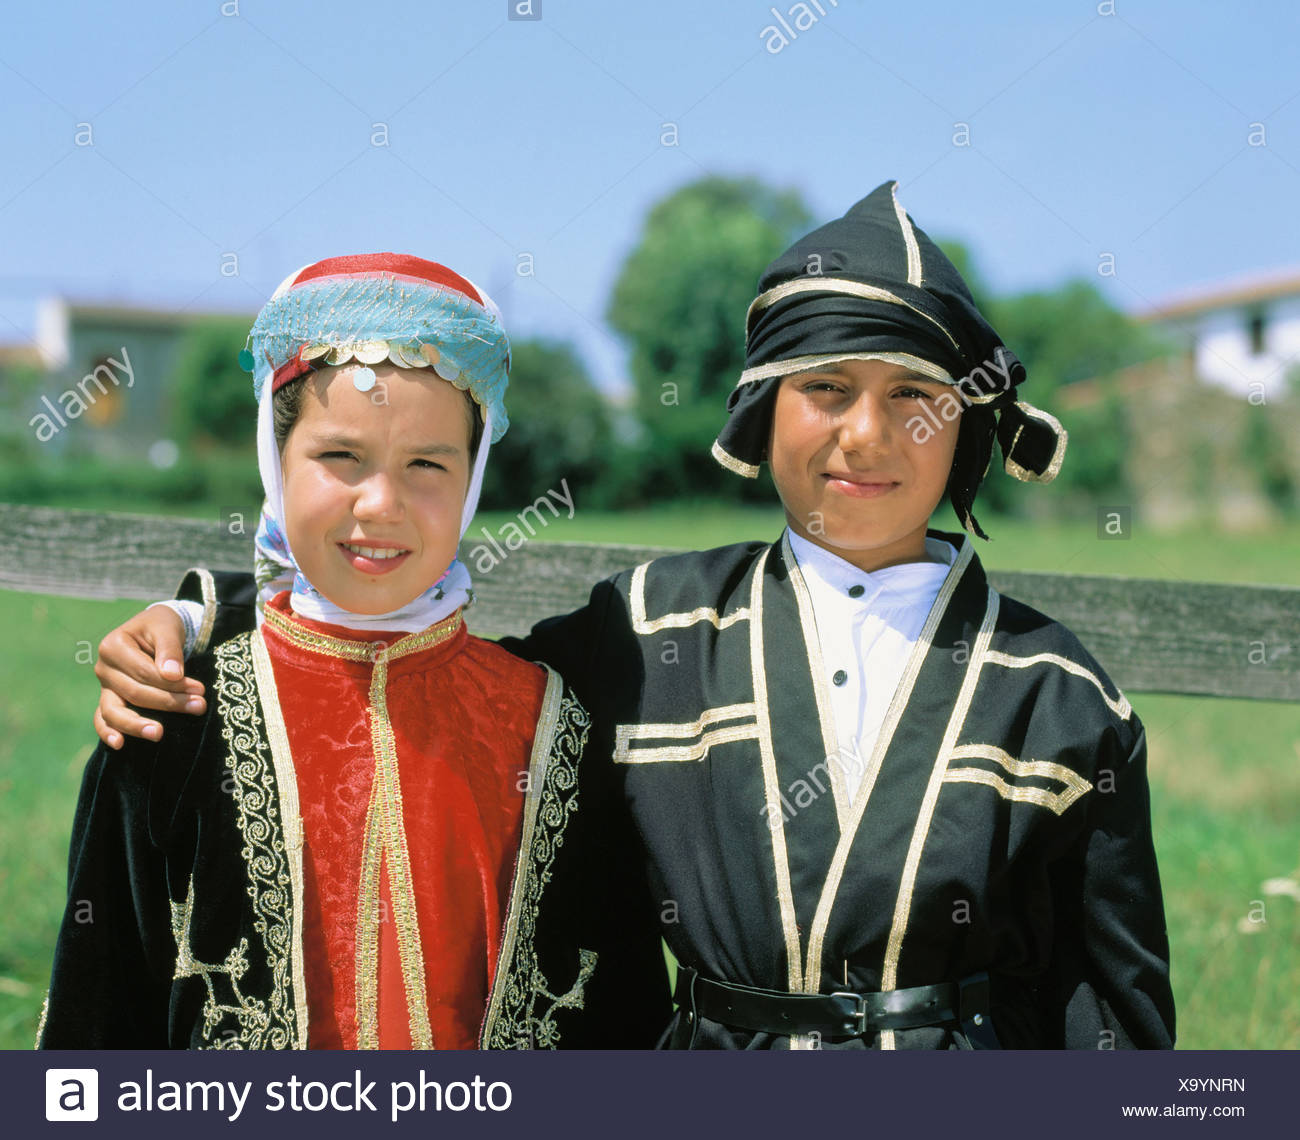 admission intake Jung Catalonia children girls music festival Cantonigros no model release portrait Spain - Stock Image